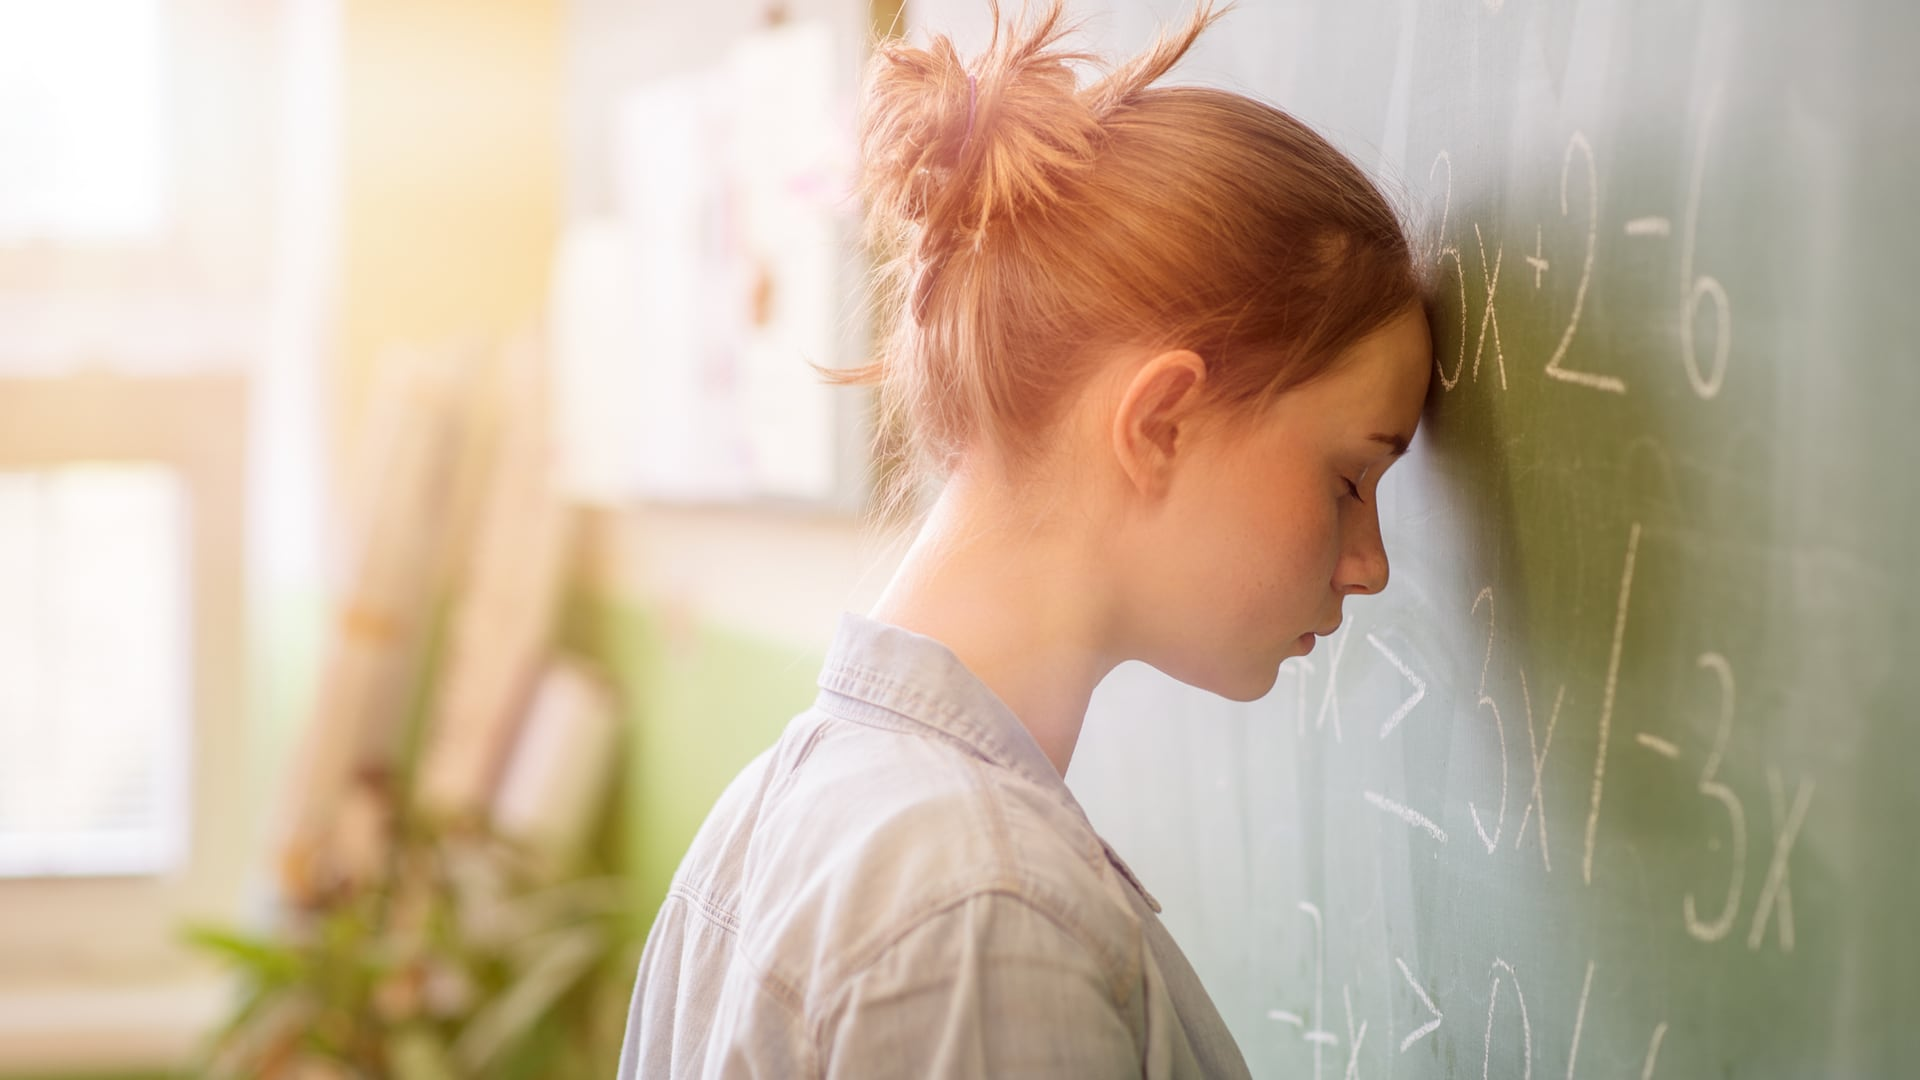 An anxious teenage girl with red hair pressing her head against a blackboard filled with maths - anxious teen